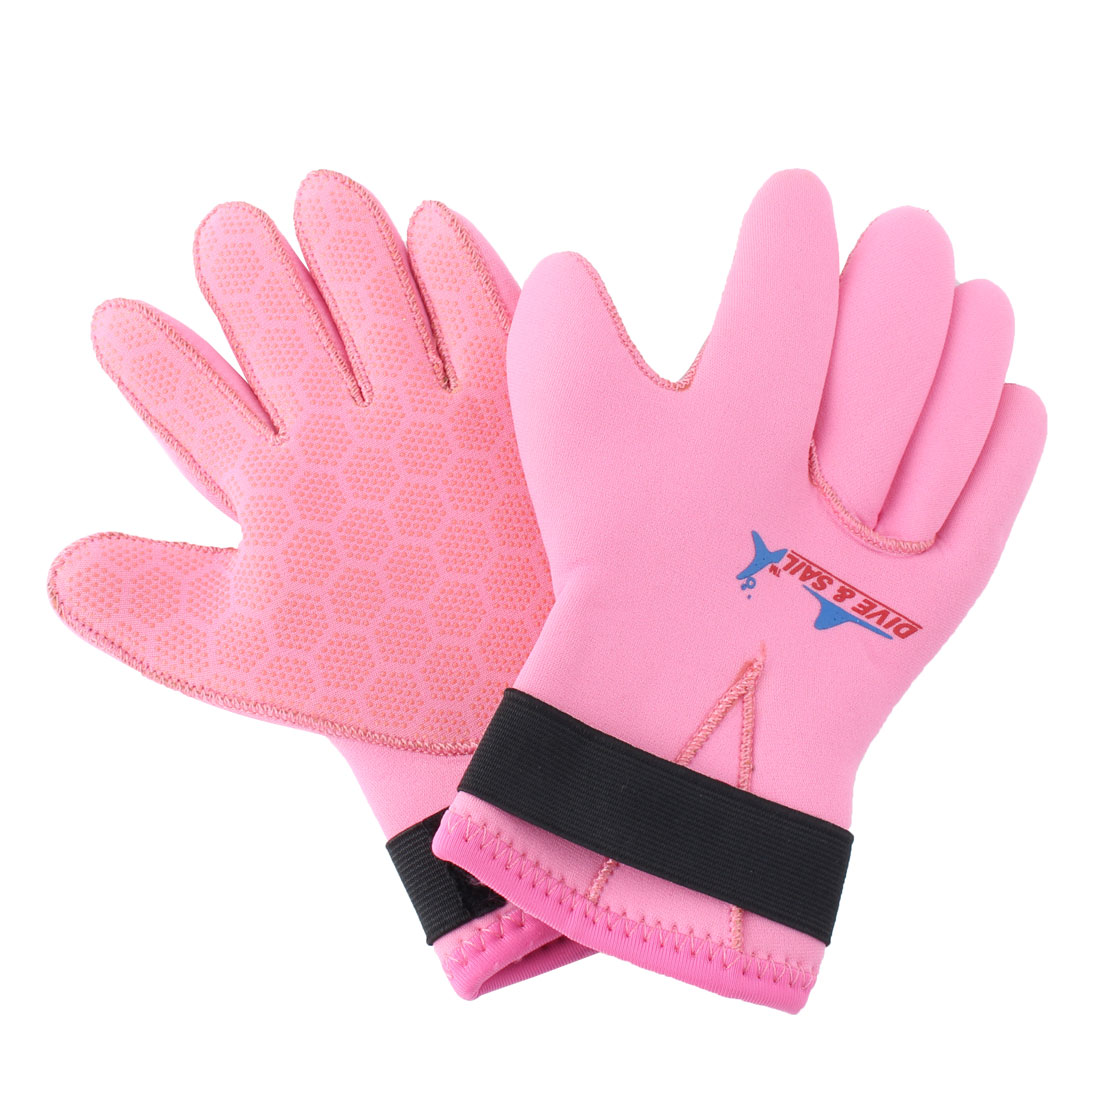 DIVE&SAIL Authorized Snorkeling Surfing Spearfishing Water Sports Warm Diving Gloves Pink Size L Pair for Child Youth